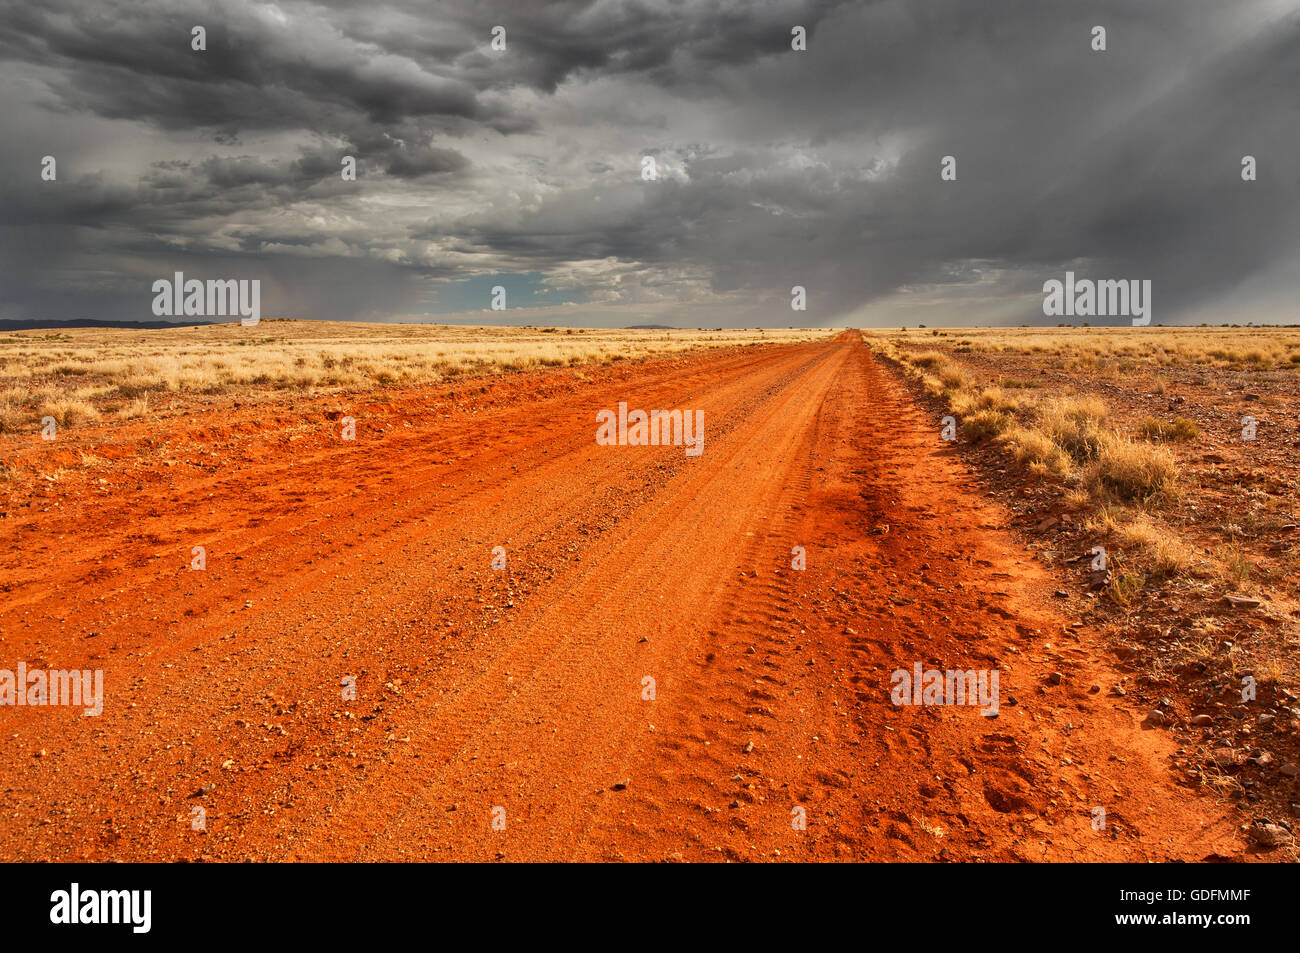 Dark clouds approaching on a desert track. - Stock Image